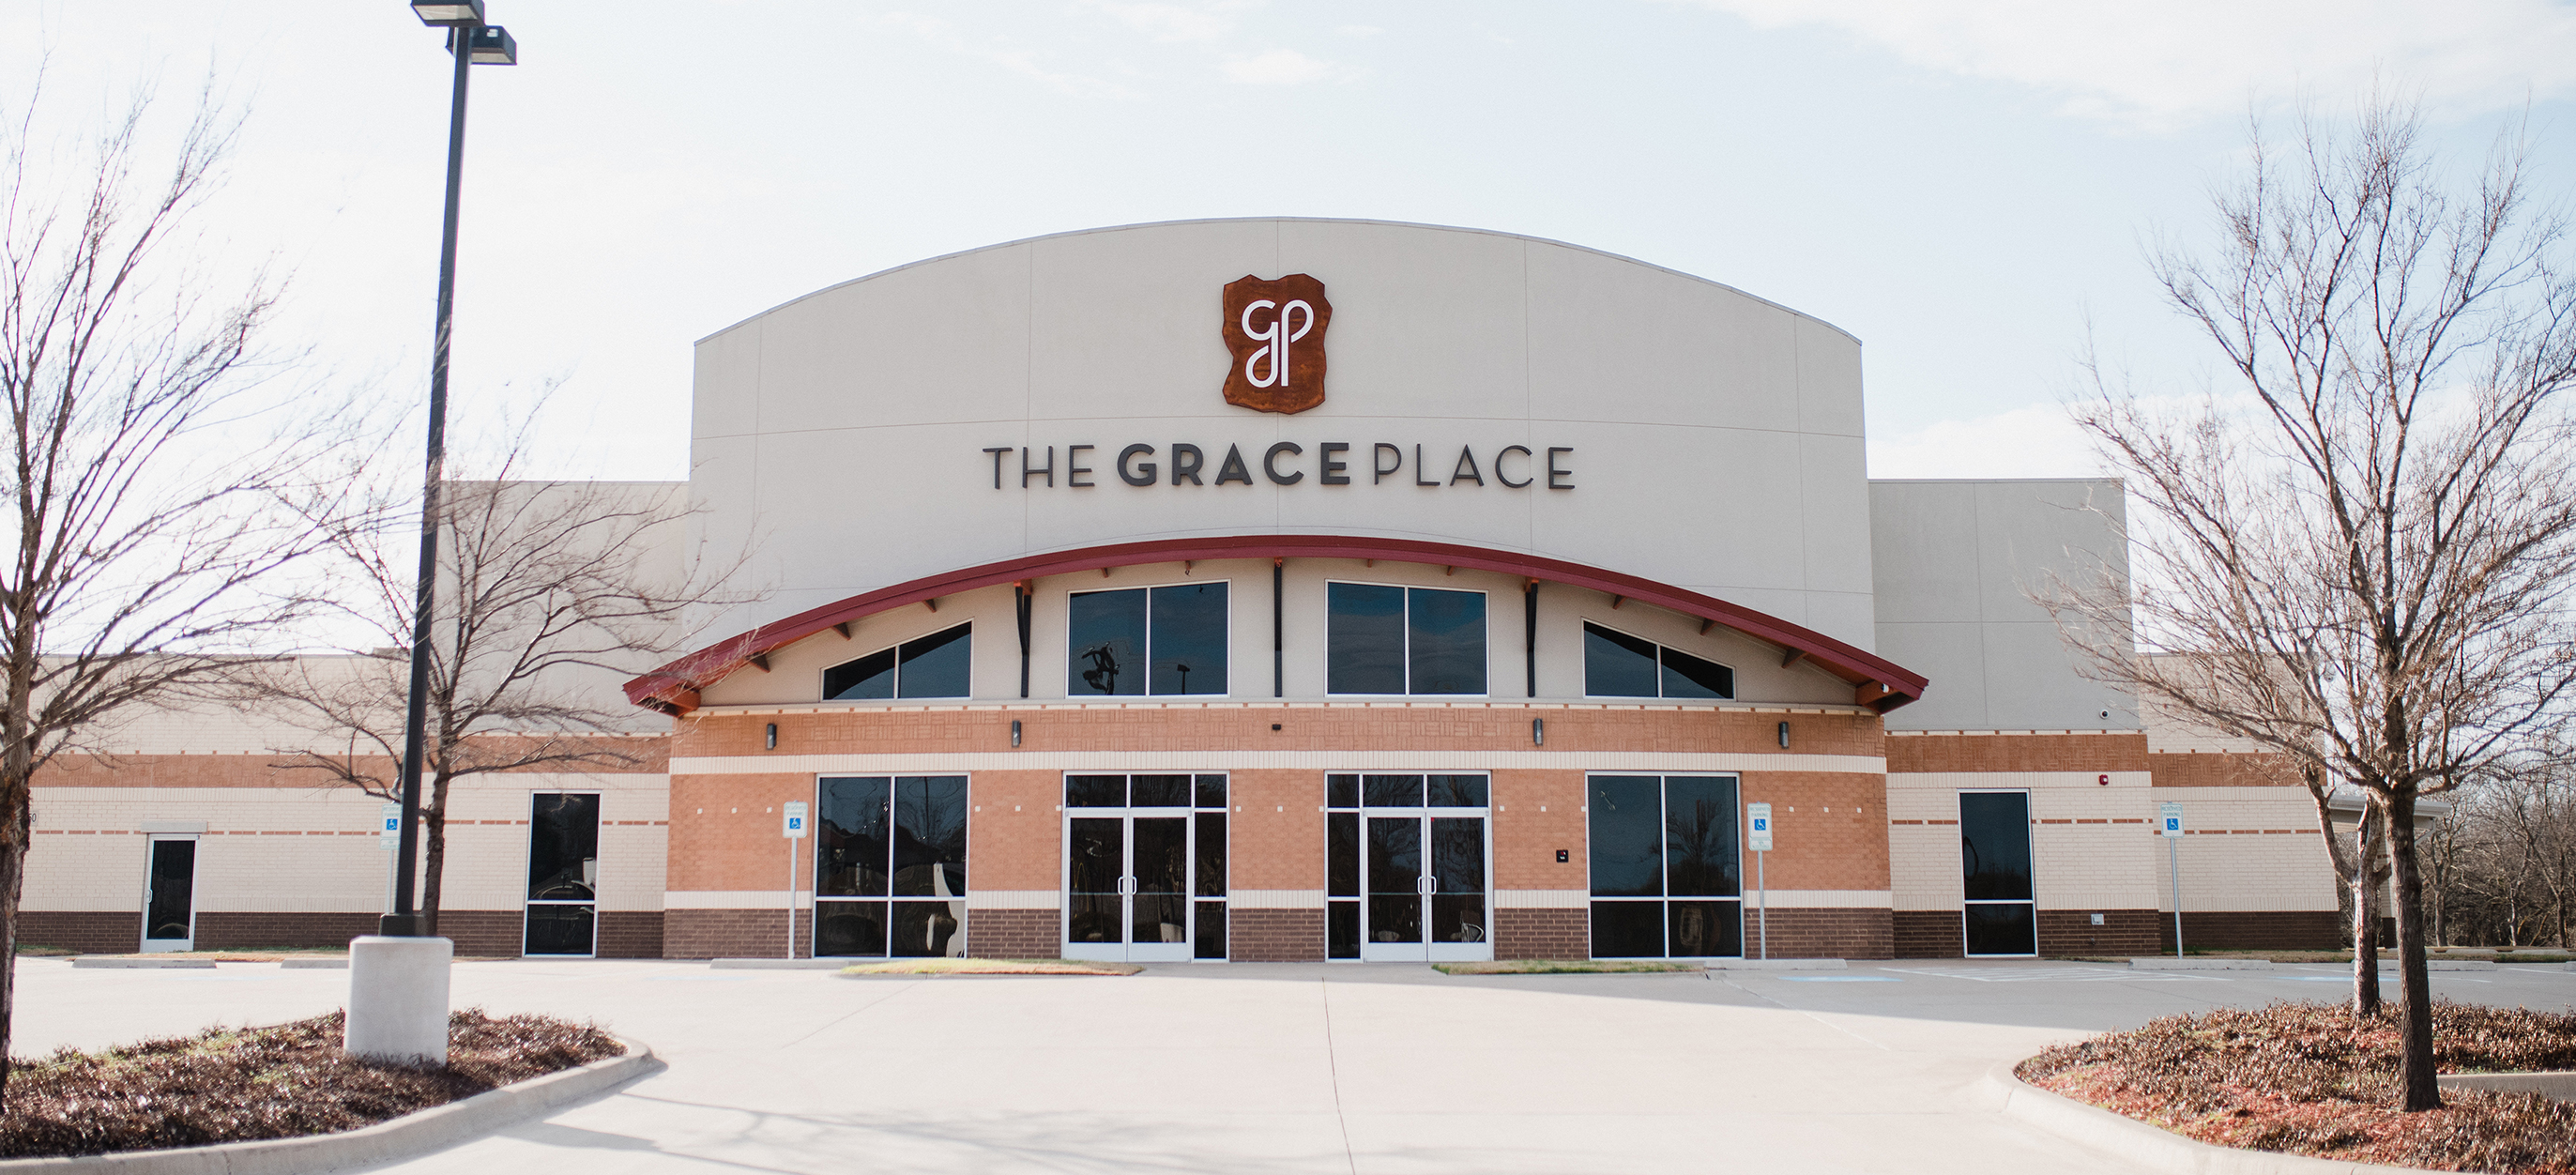 The Grace Place Church in Arlington TX